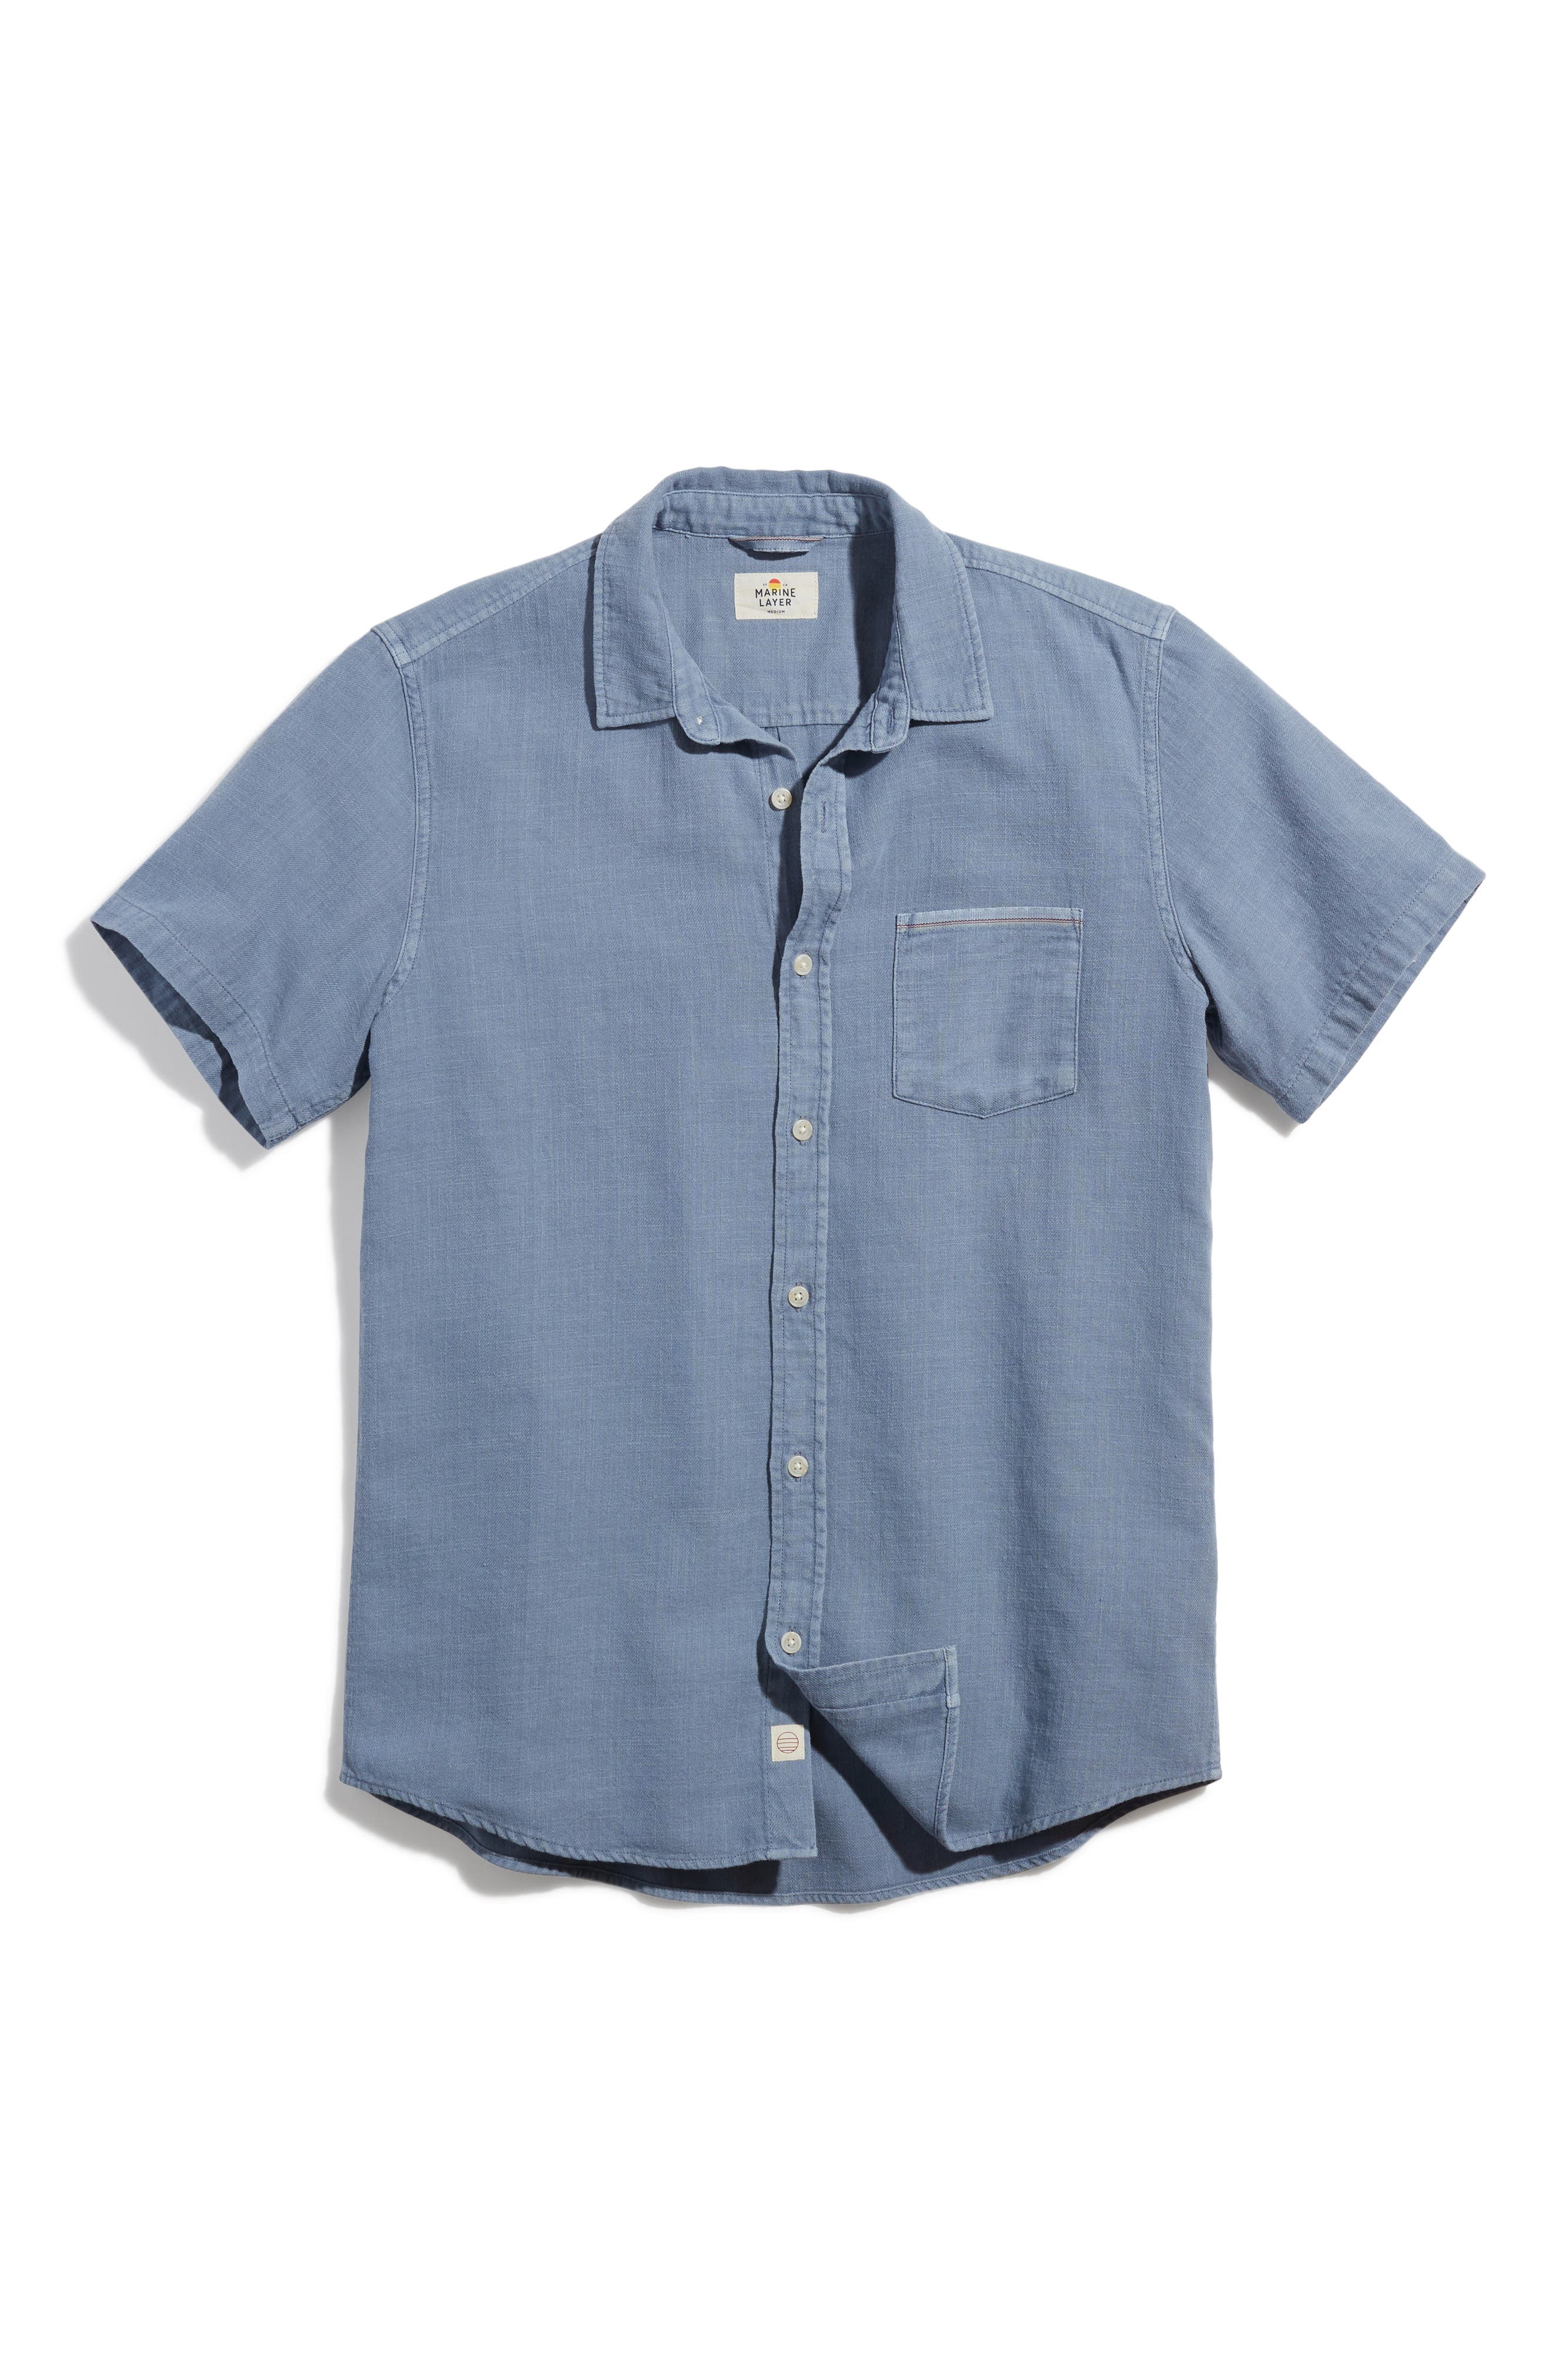 Classic Fit Selvage Short Sleeve Button-Up Shirt